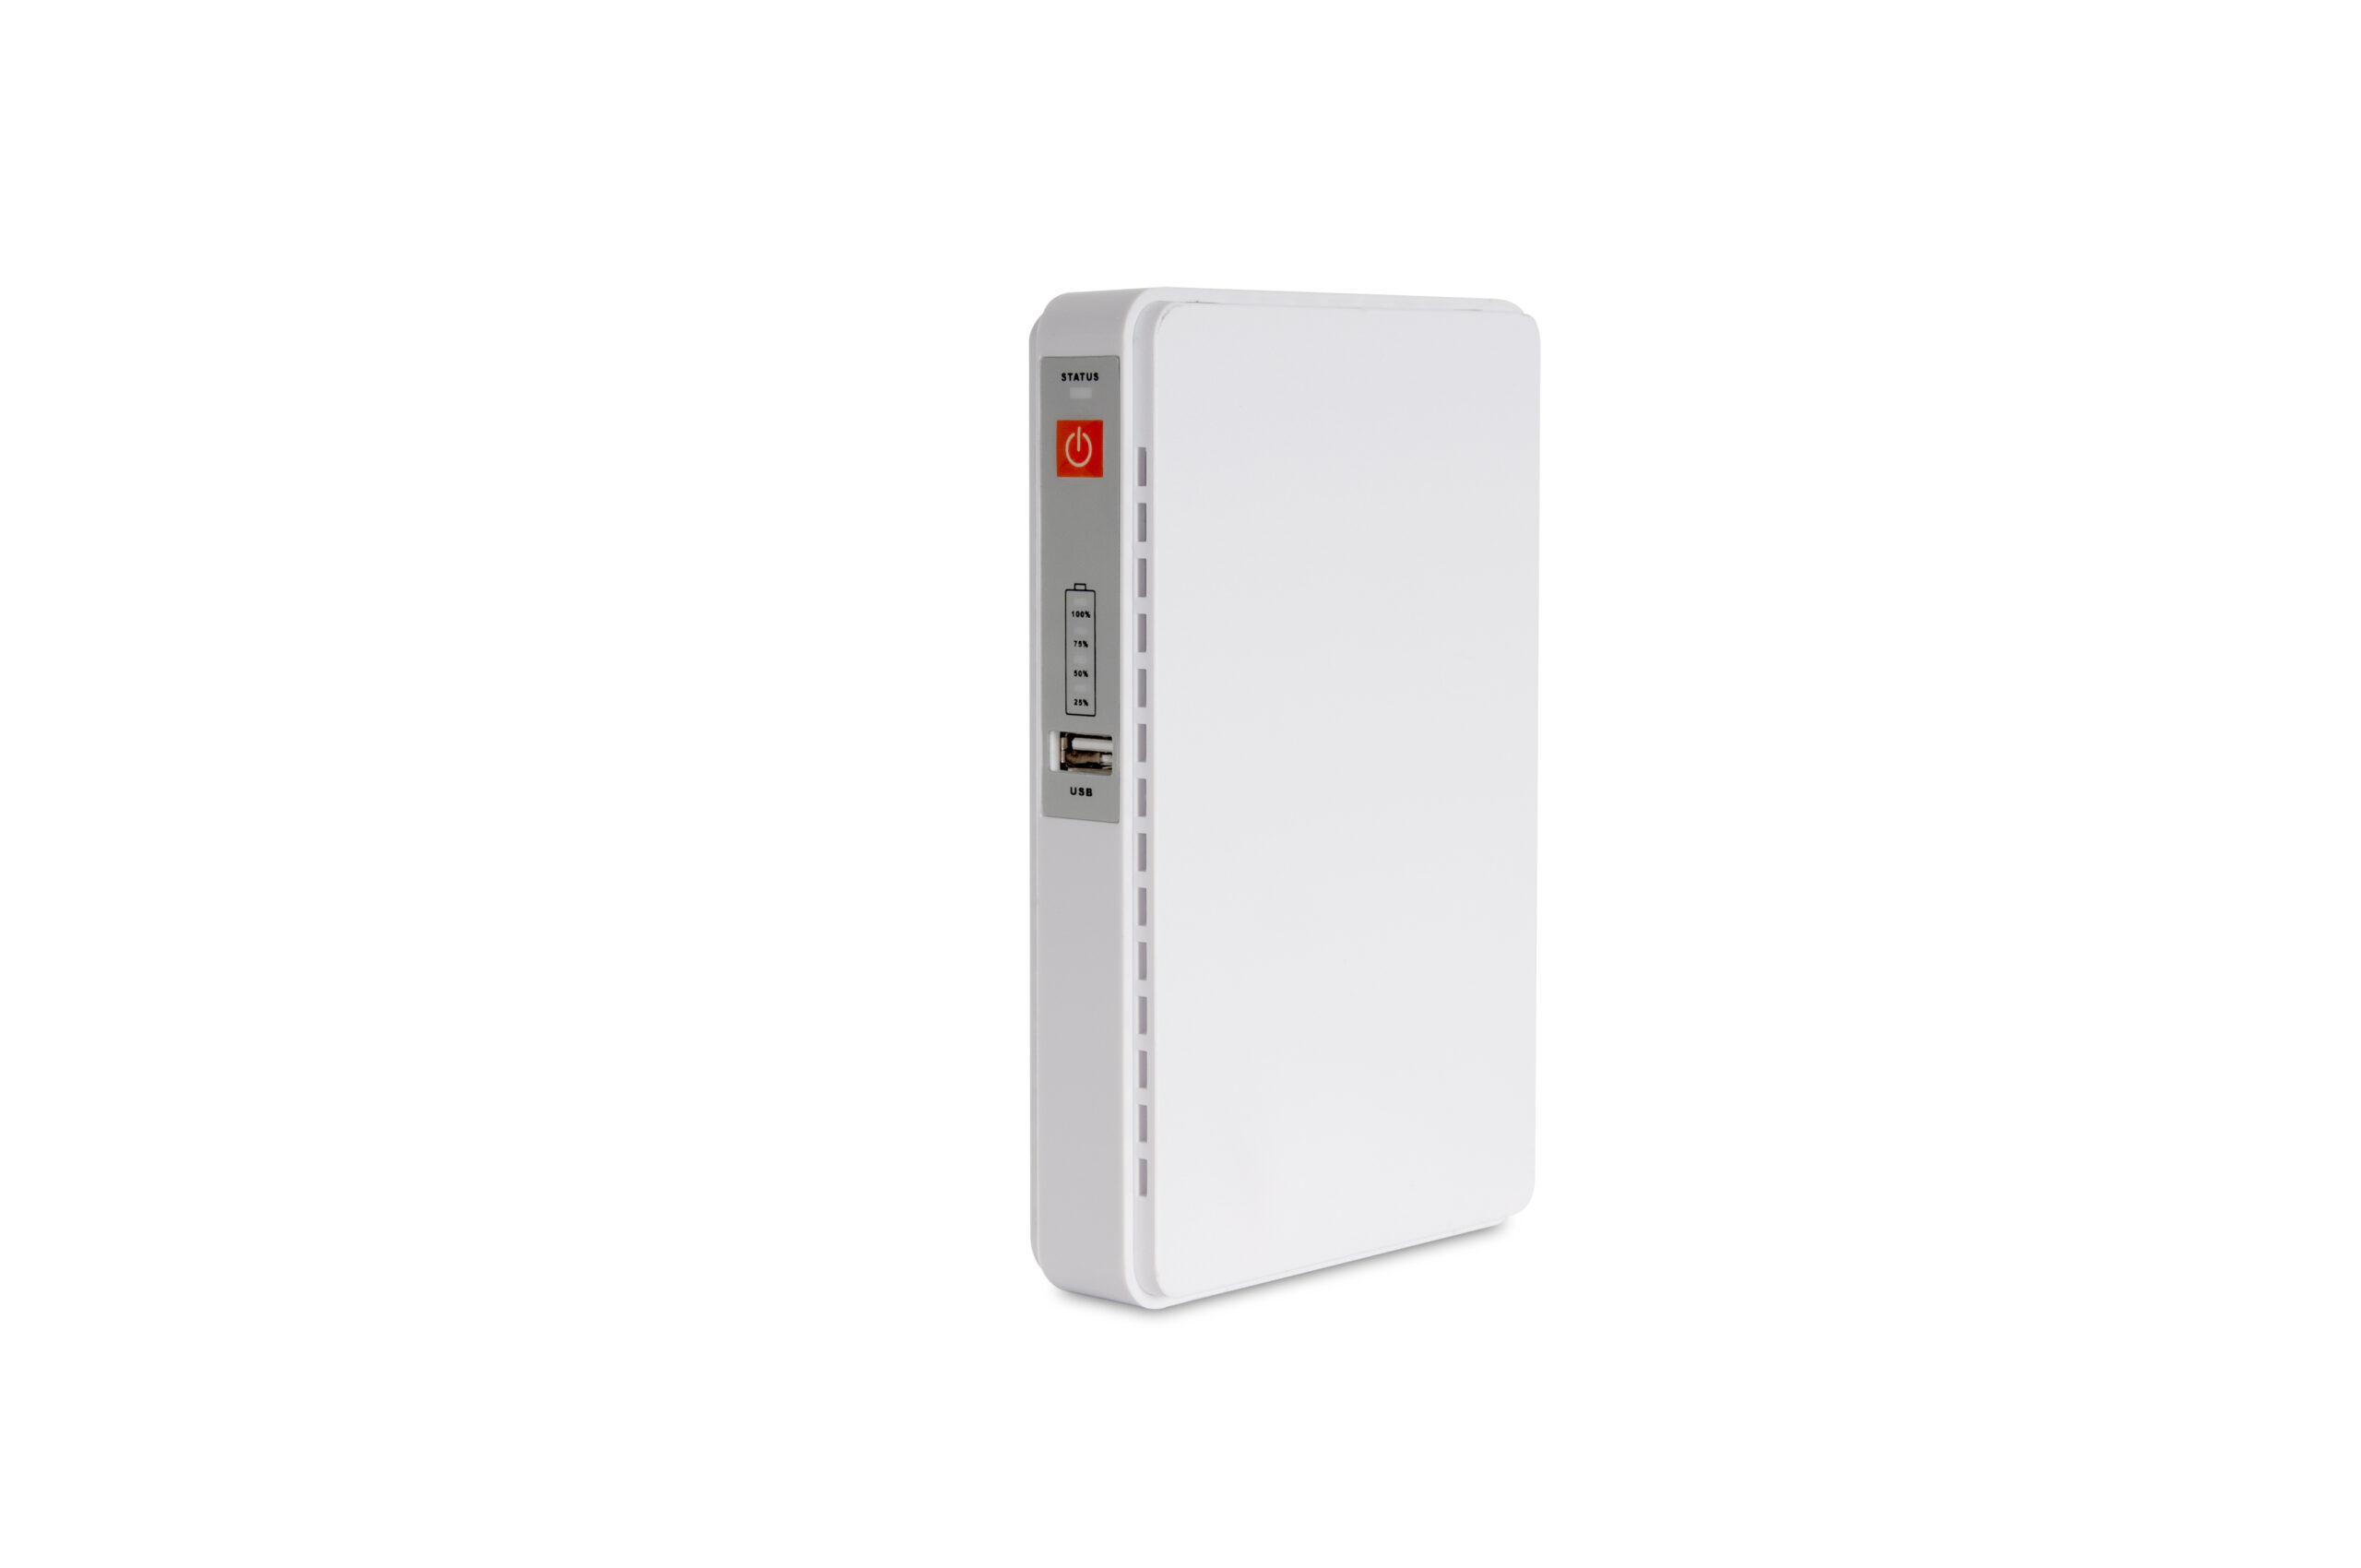 EC30-8000 Series Portable Power Bank DC UPS (30W)